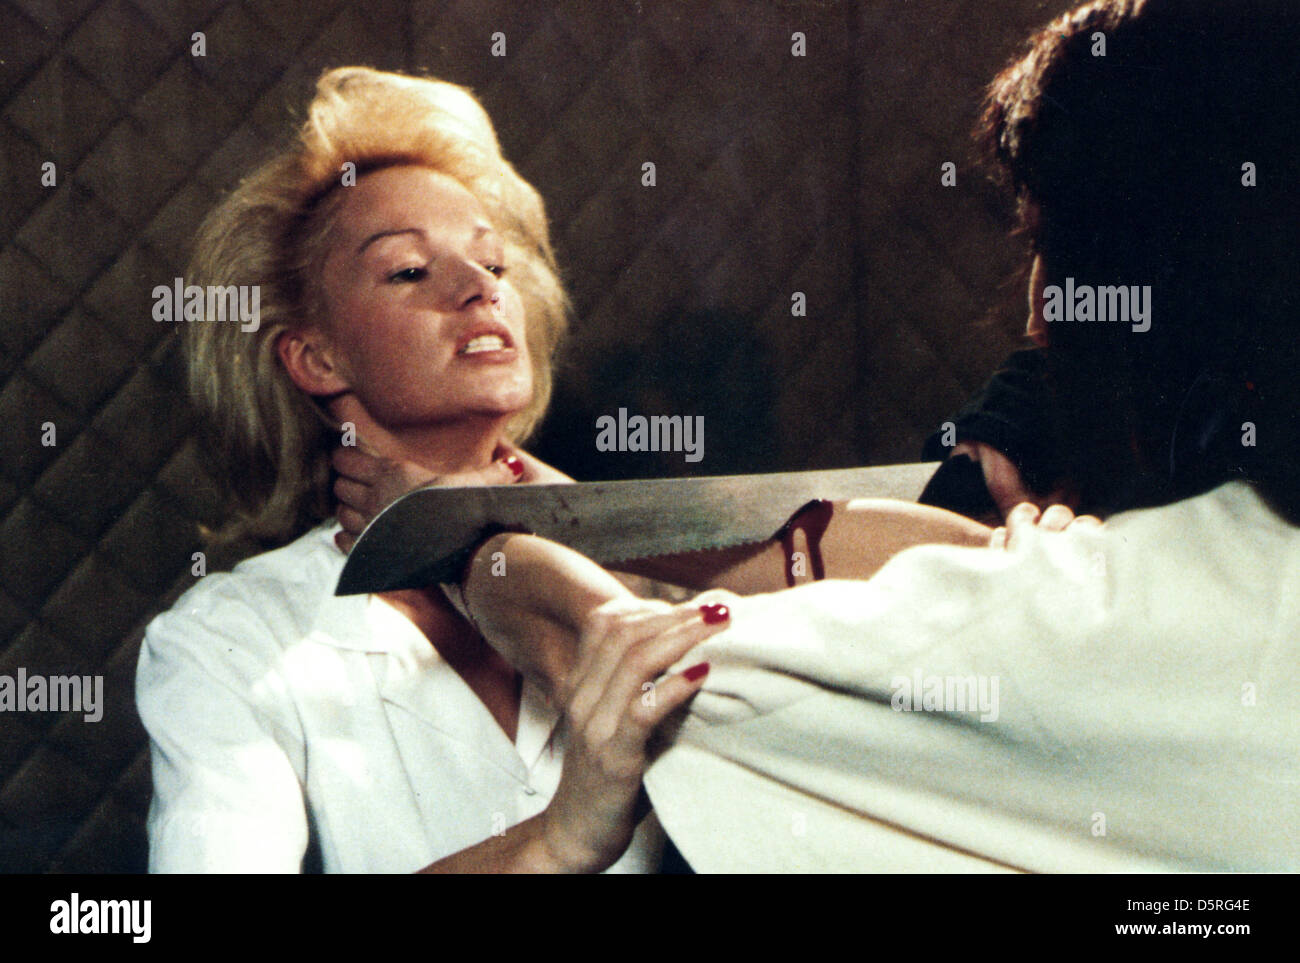 Brigitte Lahaie Faceless 1987 High Resolution Stock Photography And Images Alamy Her father was a banker and her mother was an accountant. https www alamy com stock photo brigitte lahaie faceless 1987 55221950 html